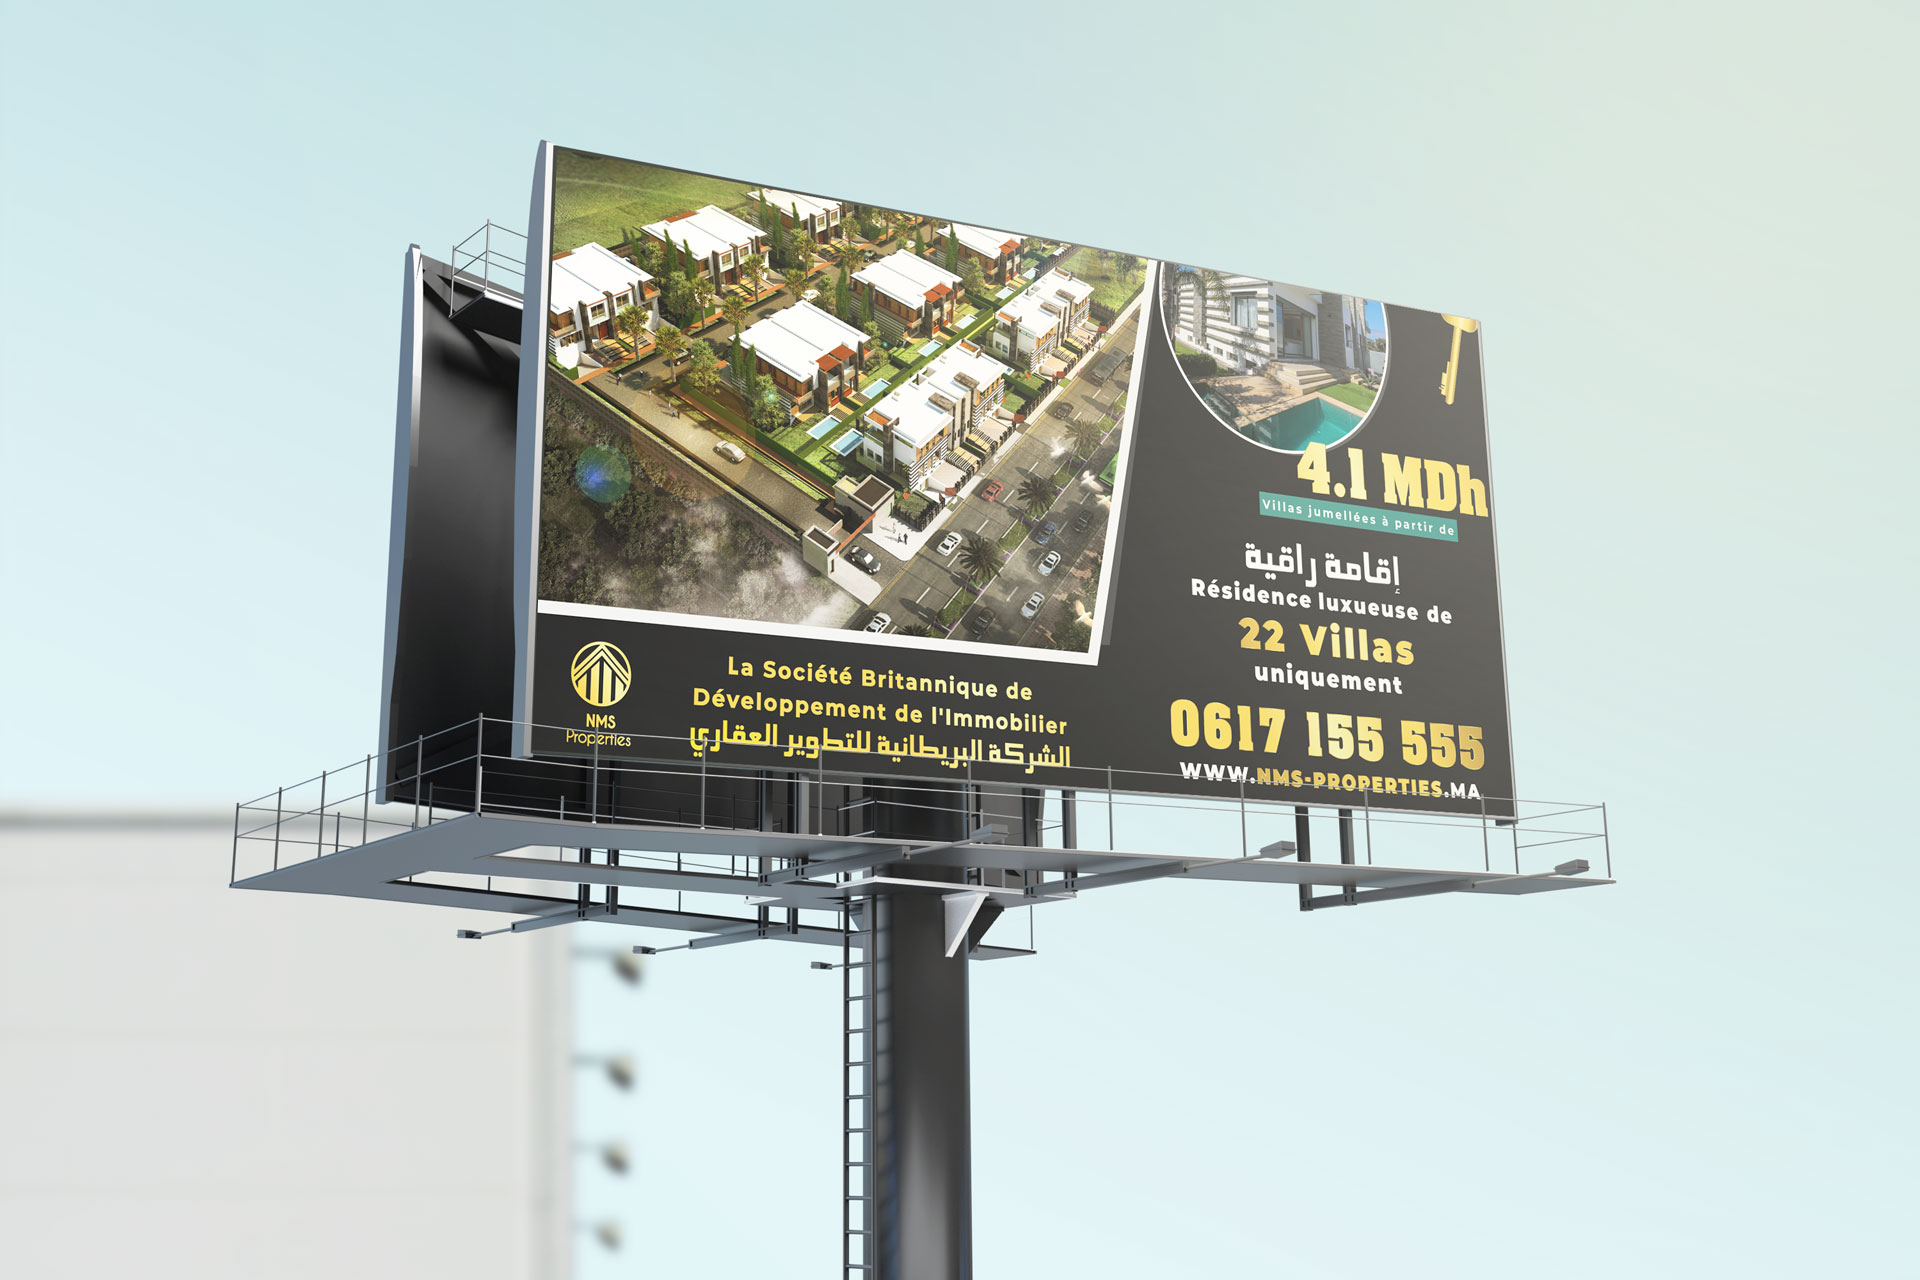 NMS-Canary-garden-trtdigital-agence-communication-branding-marketing-digitale-paneaux-publicitaire-07